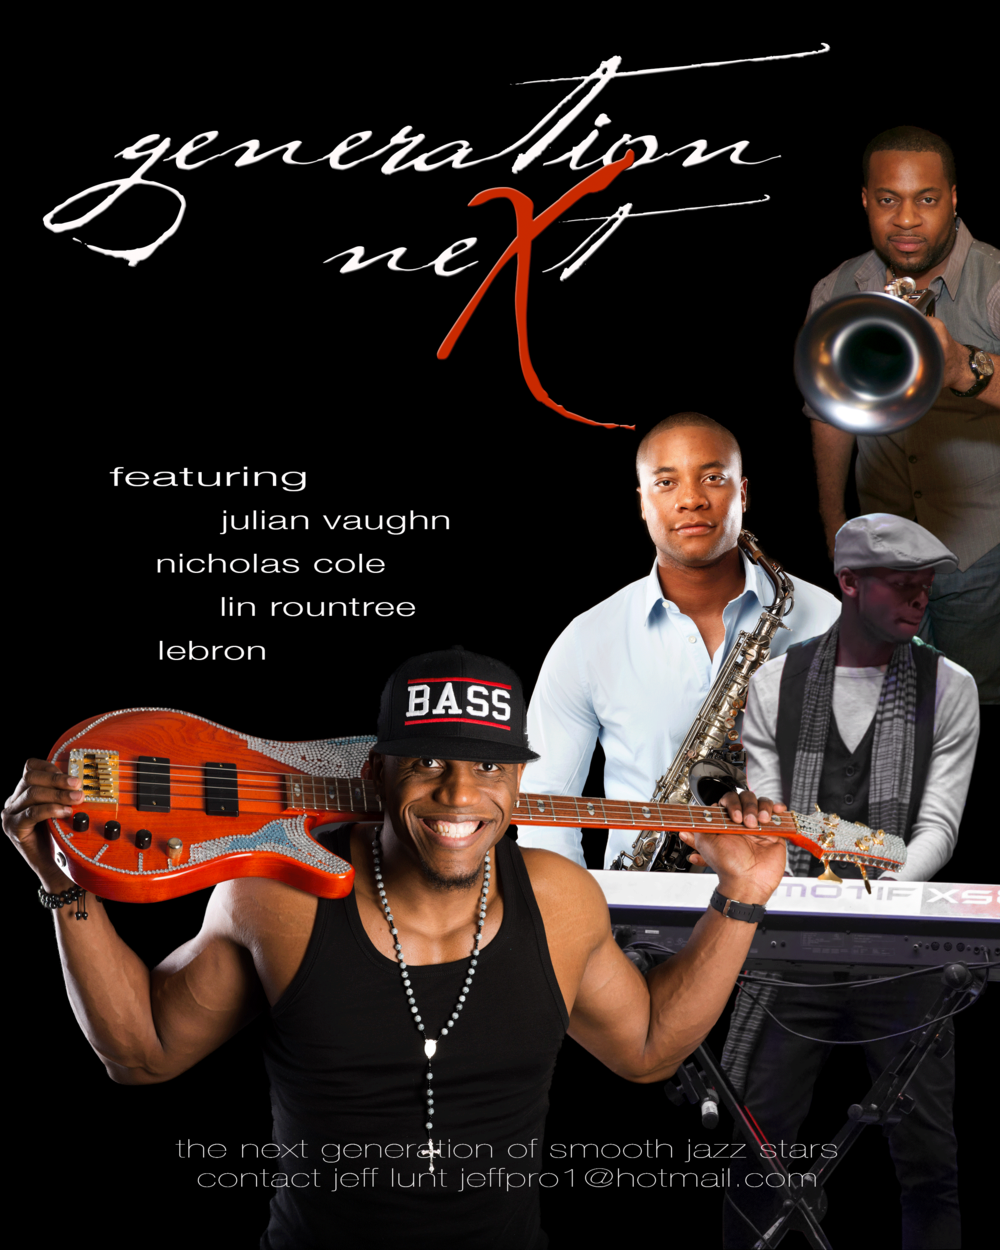 Lebron wil be touring the Festival circuit in 2014 with fellow Trippin' and Rhythm artists Julian Vaughn, Nicholas Cole, and Lin Rountree.